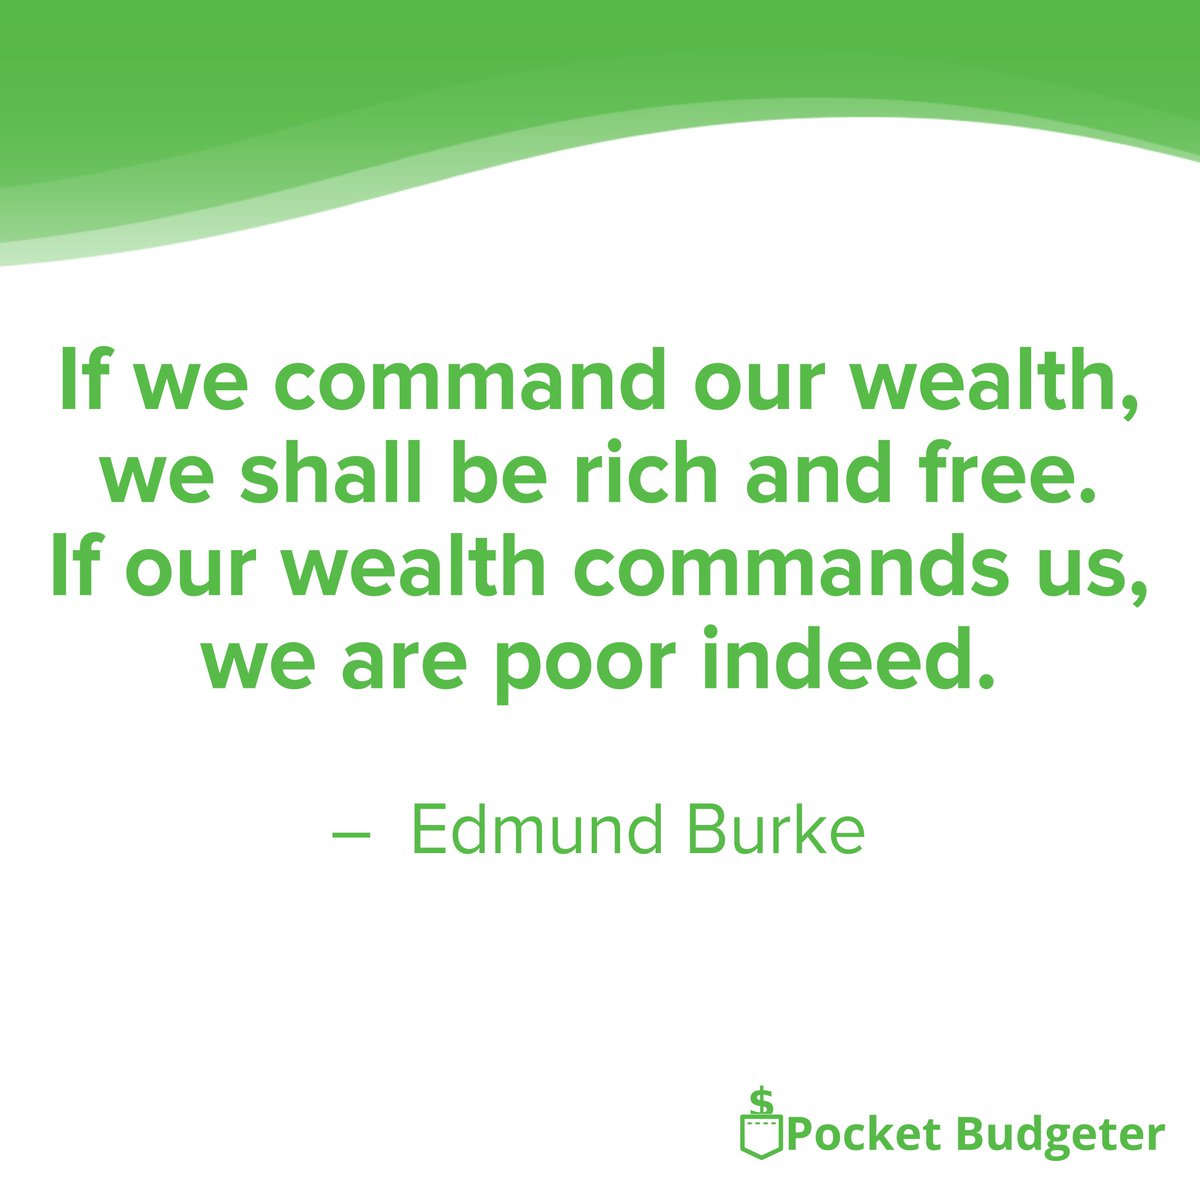 A wise quote from a wise man. Controlling your finances starts with starting a budget. Be in charge of what you spend your hard-earned money on.   #finance #fintech #budget #quote #quotes #motivation #life #money  #success #wealth #inspiration #lifestyle #successful